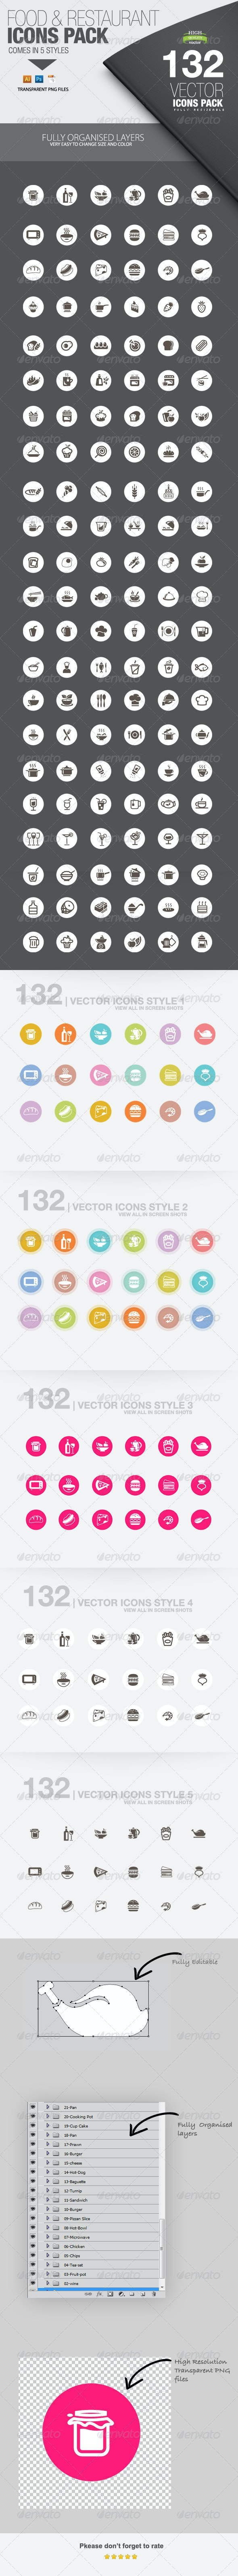 Food/Restaurant - 132 Icons - Food Objects